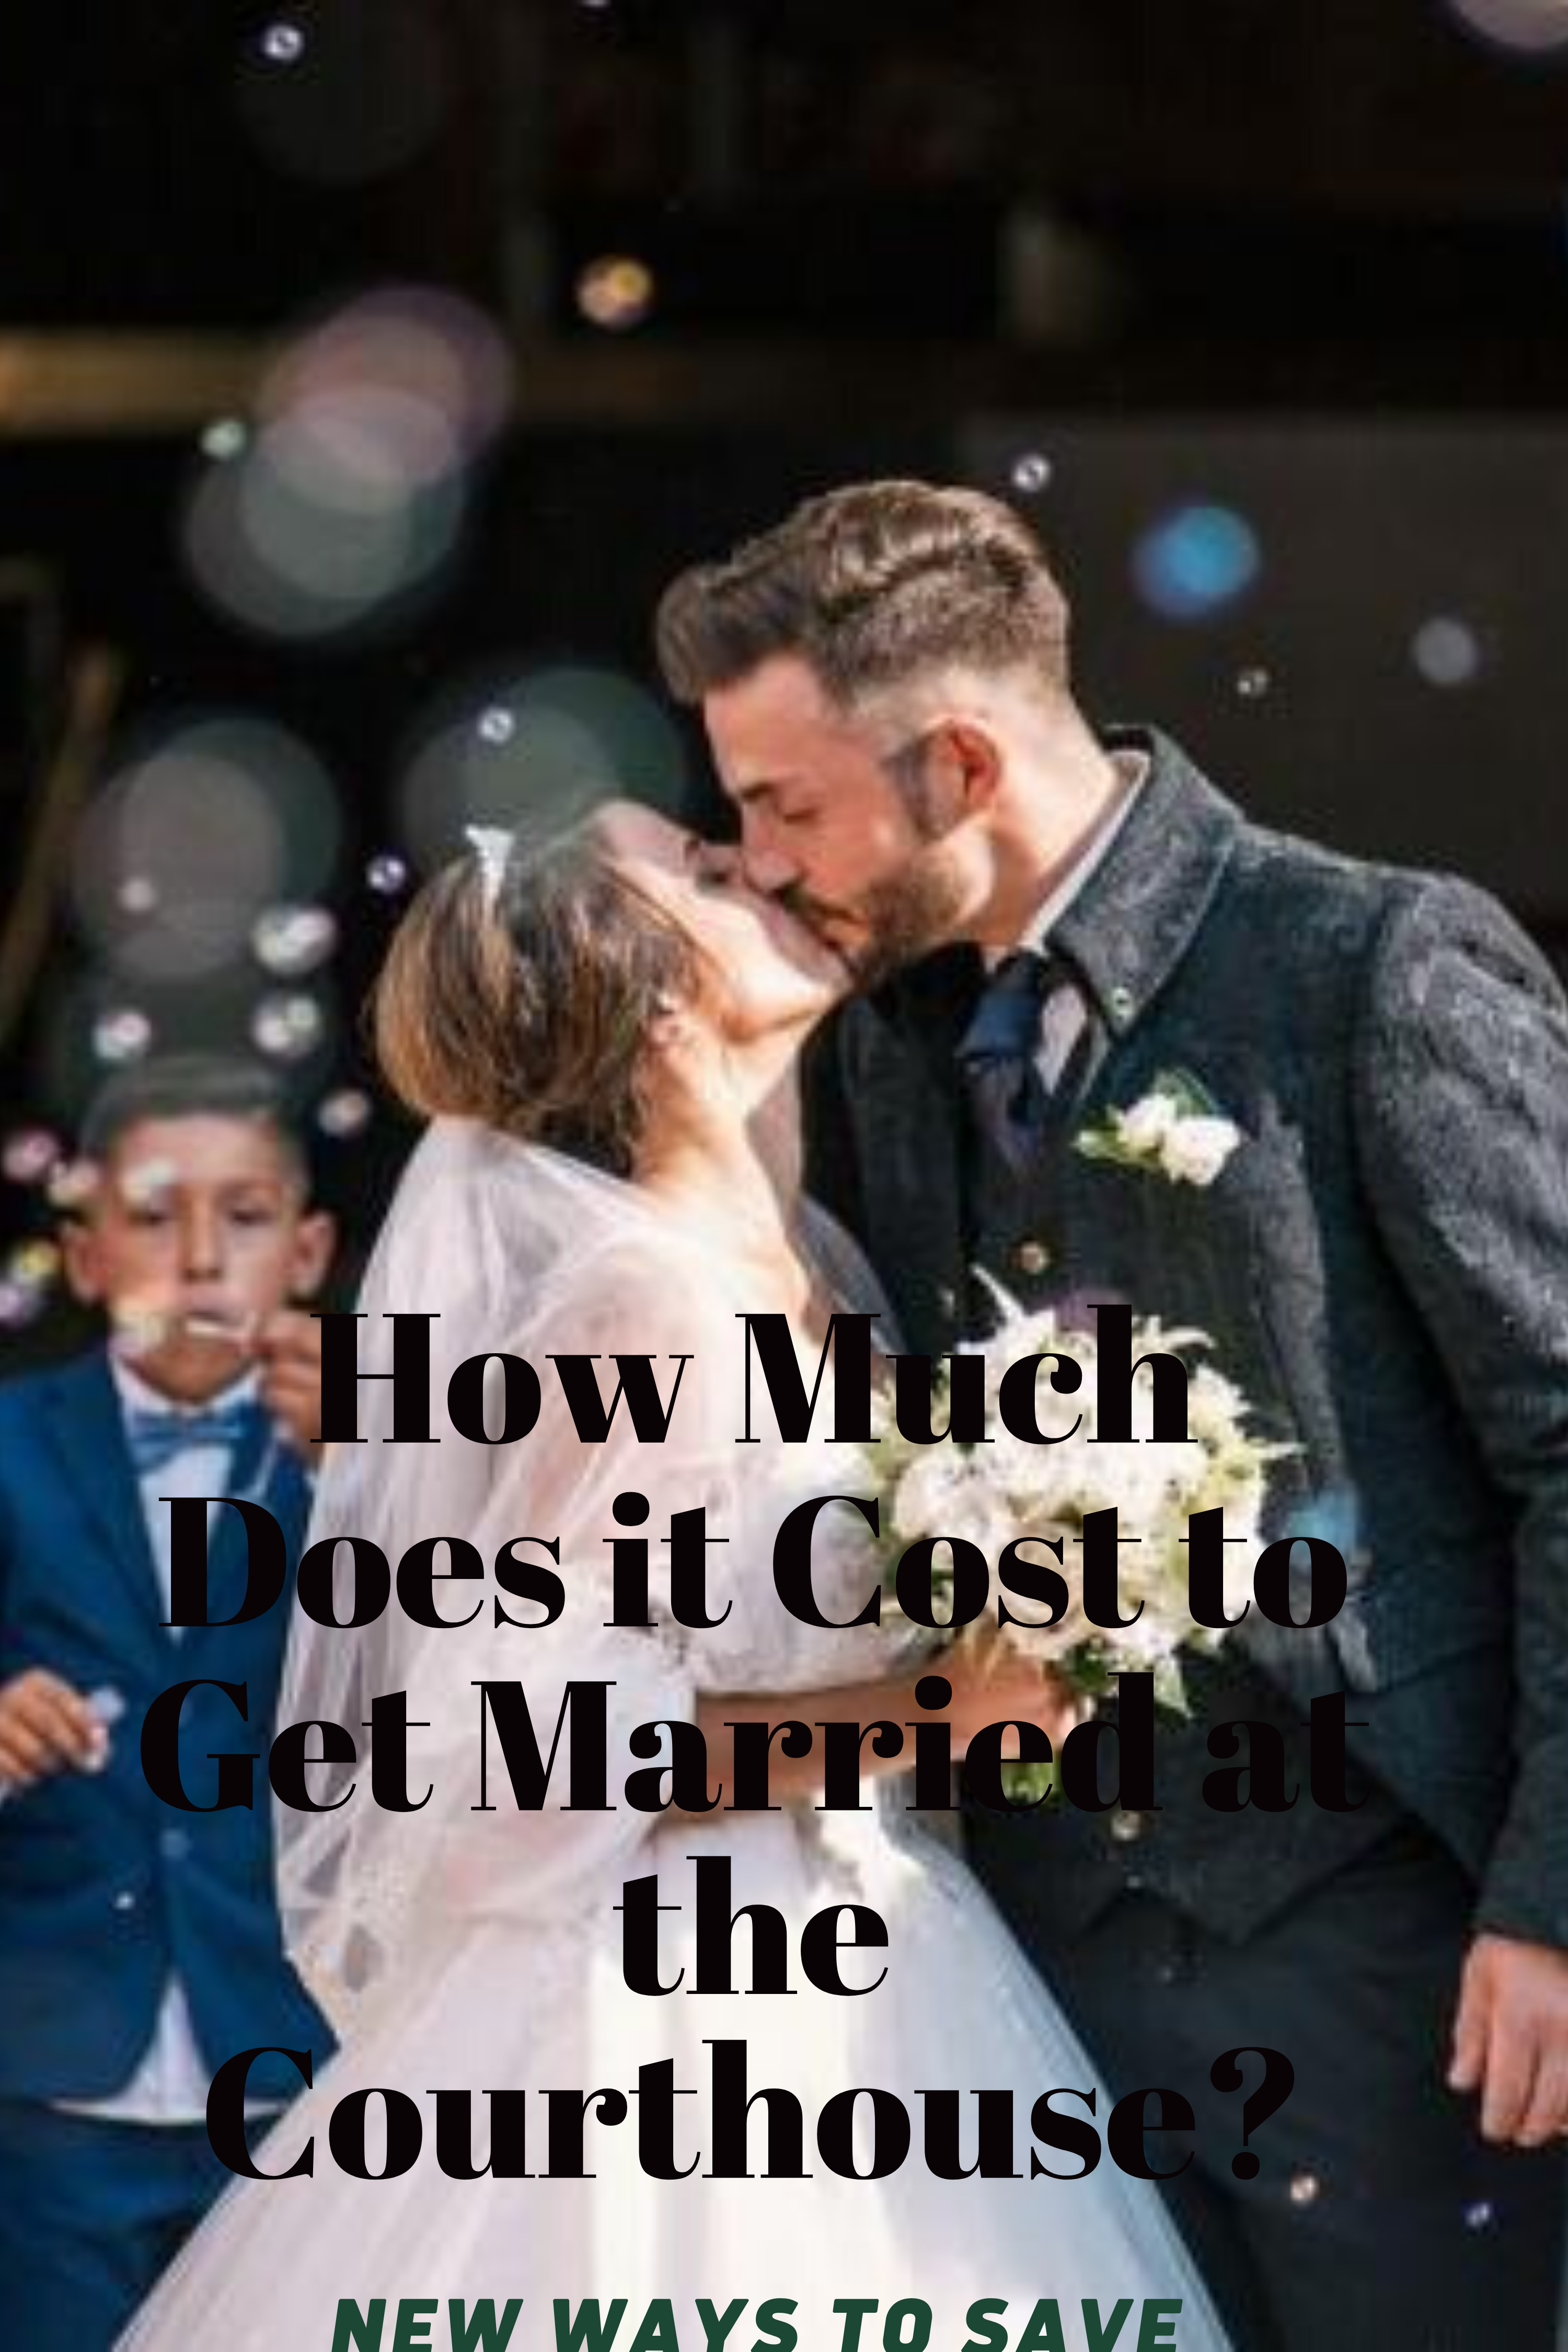 68282a3677ac8ae00a38176c5c51e36a - How Much Is To Get Married At The Courthouse